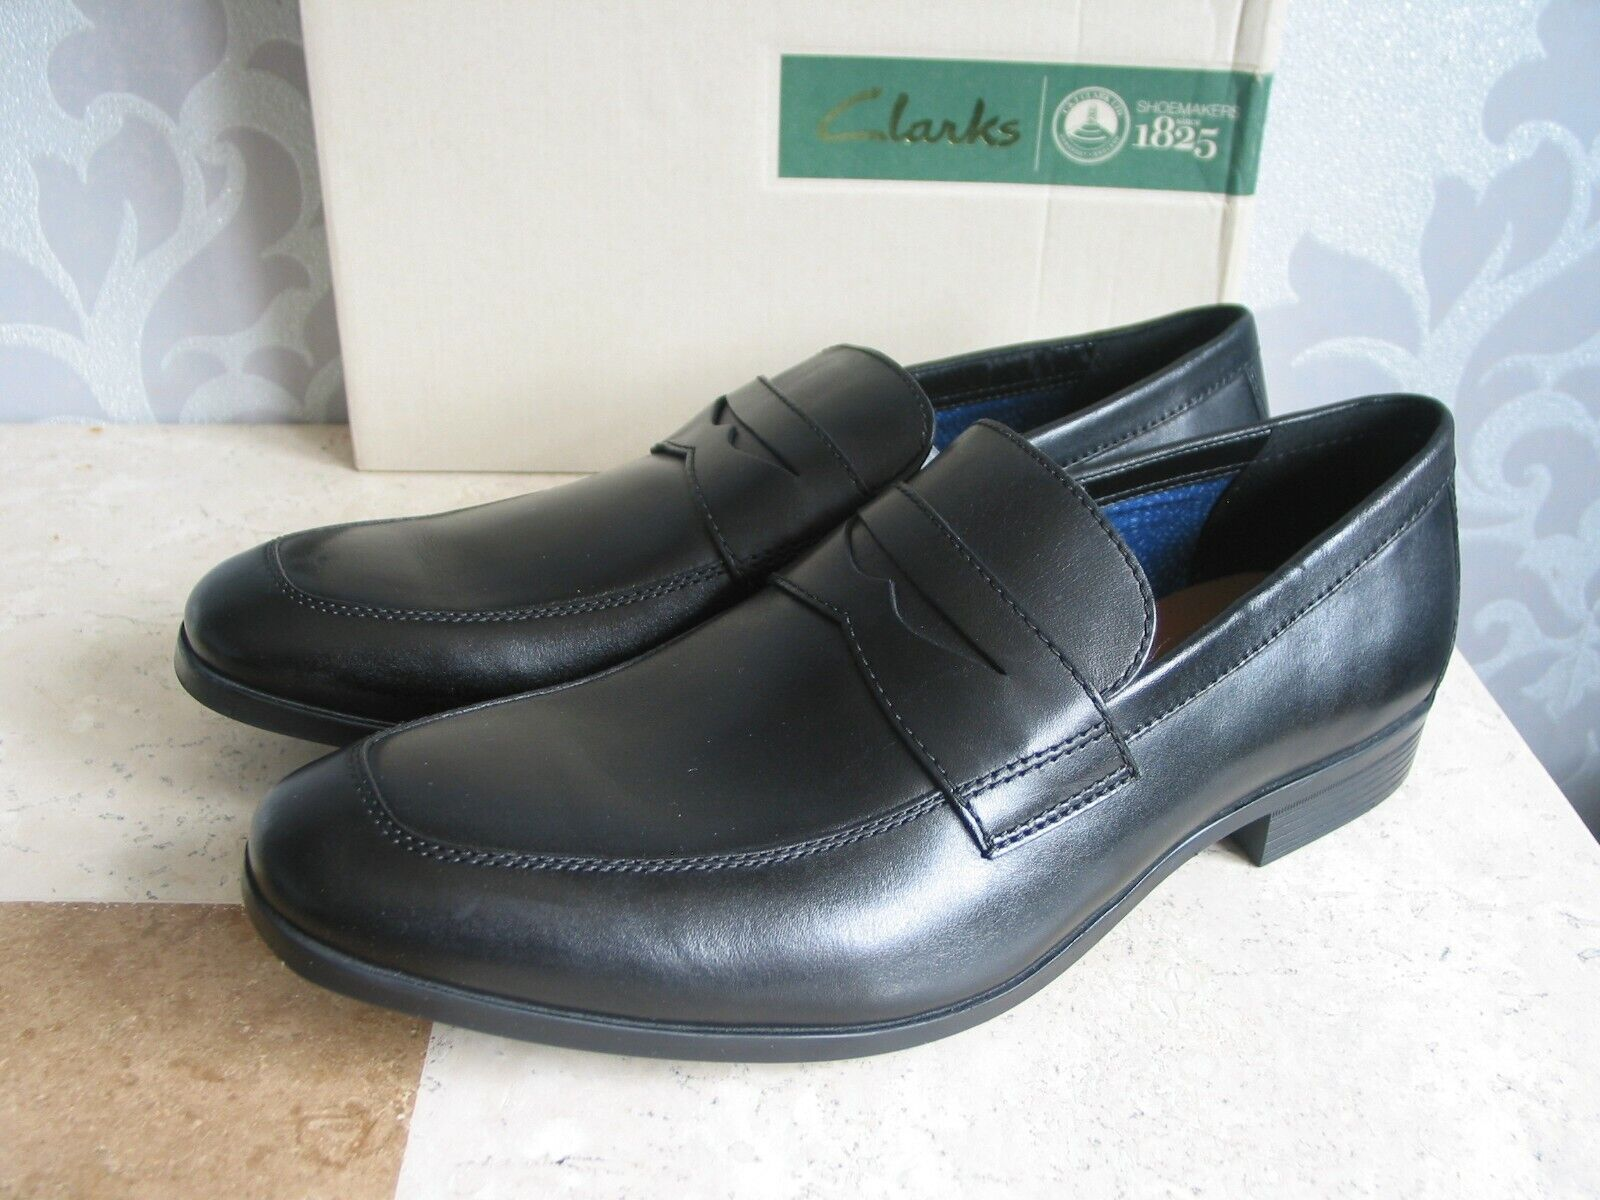 NEW CLARKS CONWELL SLIP ON BLACK LEATHER SHOES UK SIZE 8 & 10.5